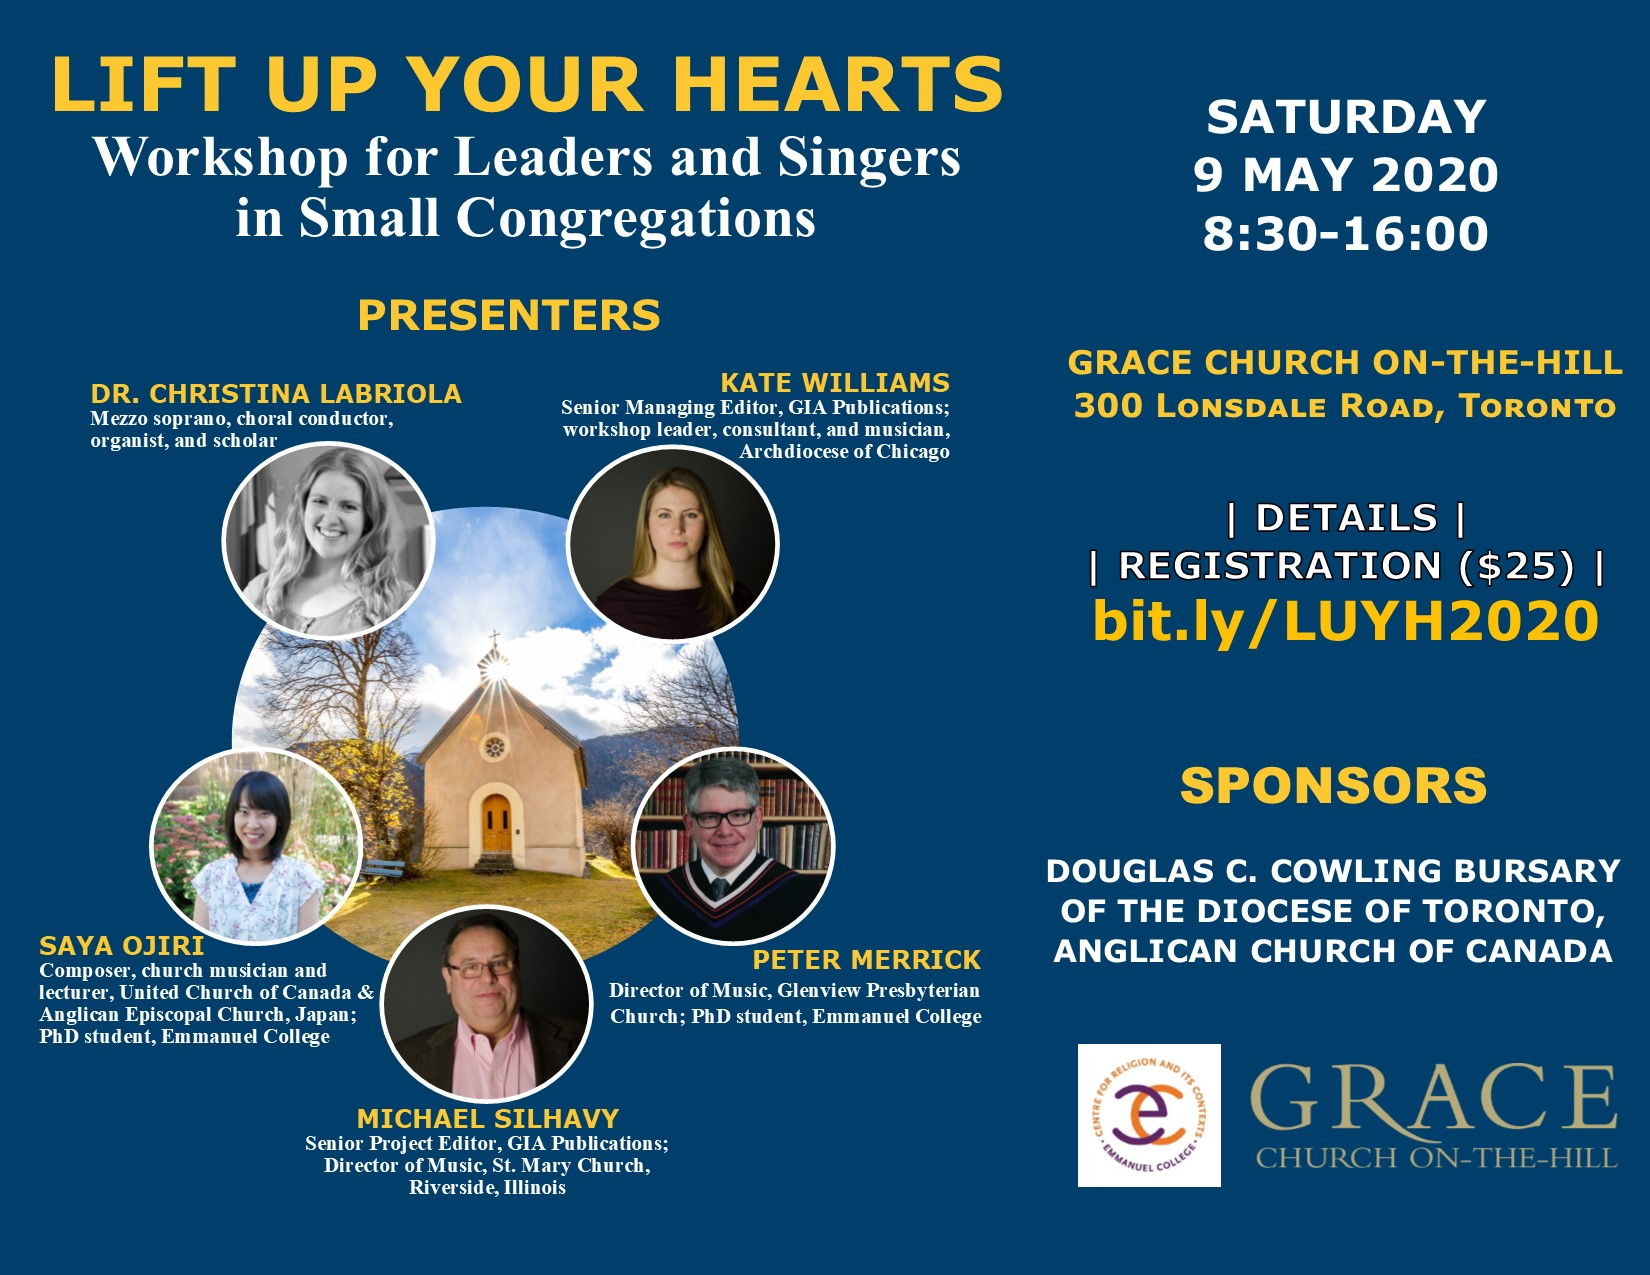 MAY 09   Lift up Your Hearts – Workshop of Leaders and Singers in Small Congregations